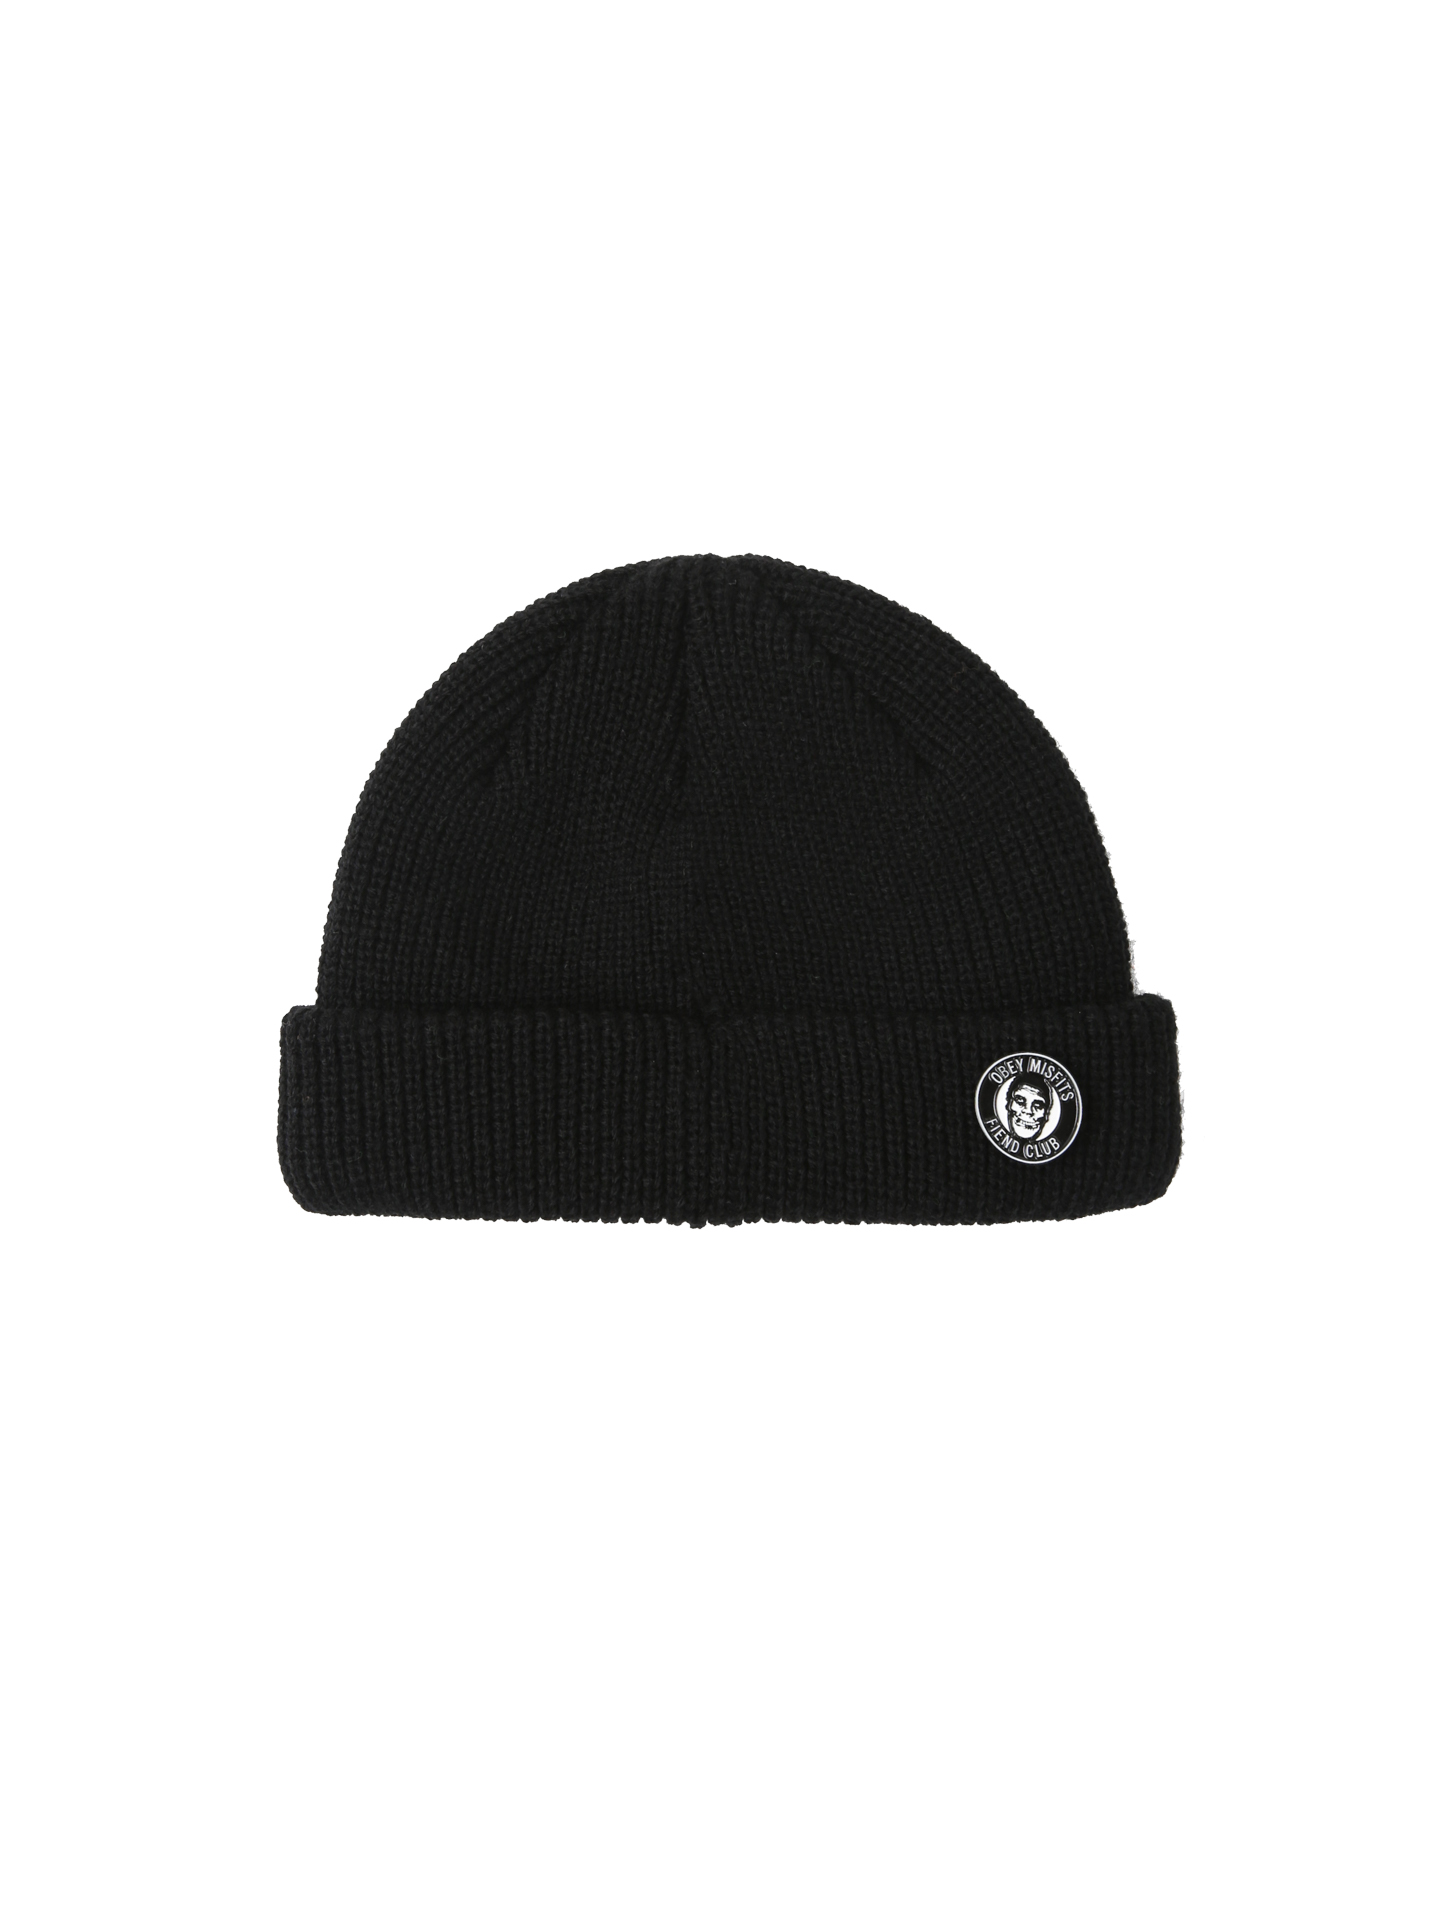 Misfits Legacy Beanie - Obey Clothing UK e55e0869ef4